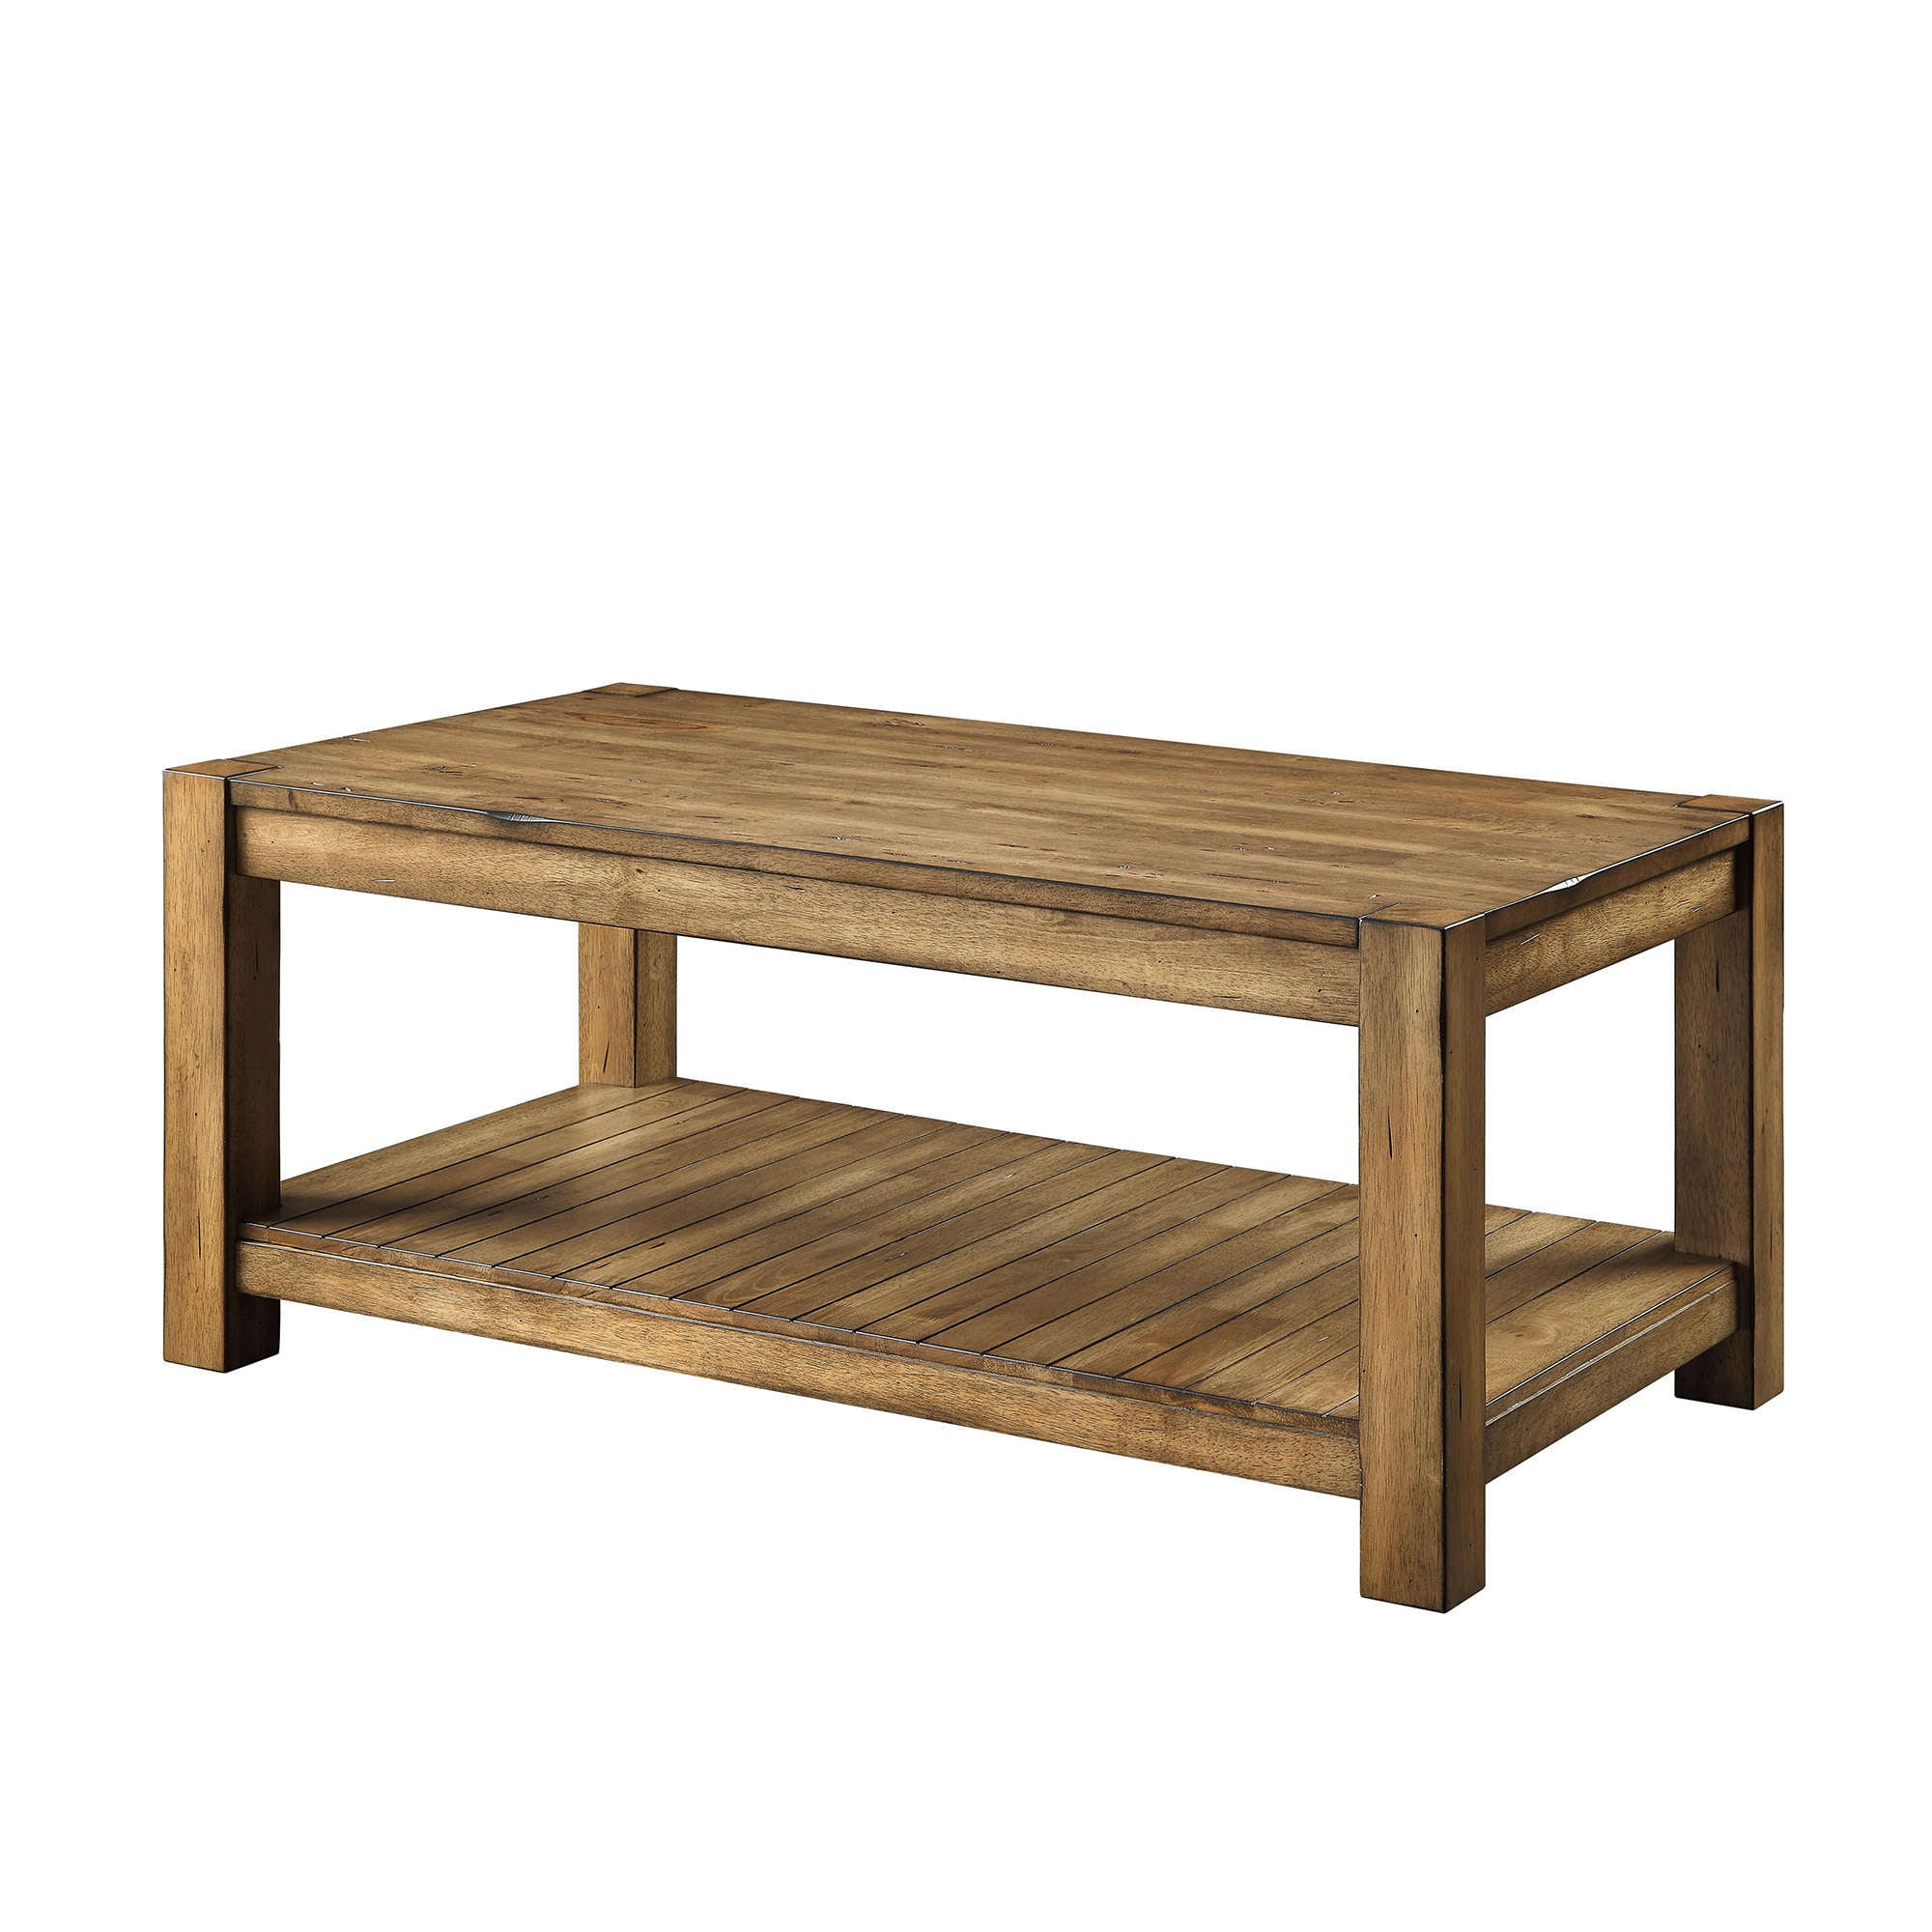 Better Homes & Gardens Bryant Coffee Table, Rustic Maple Brown Finish by WHALEN LIMITED